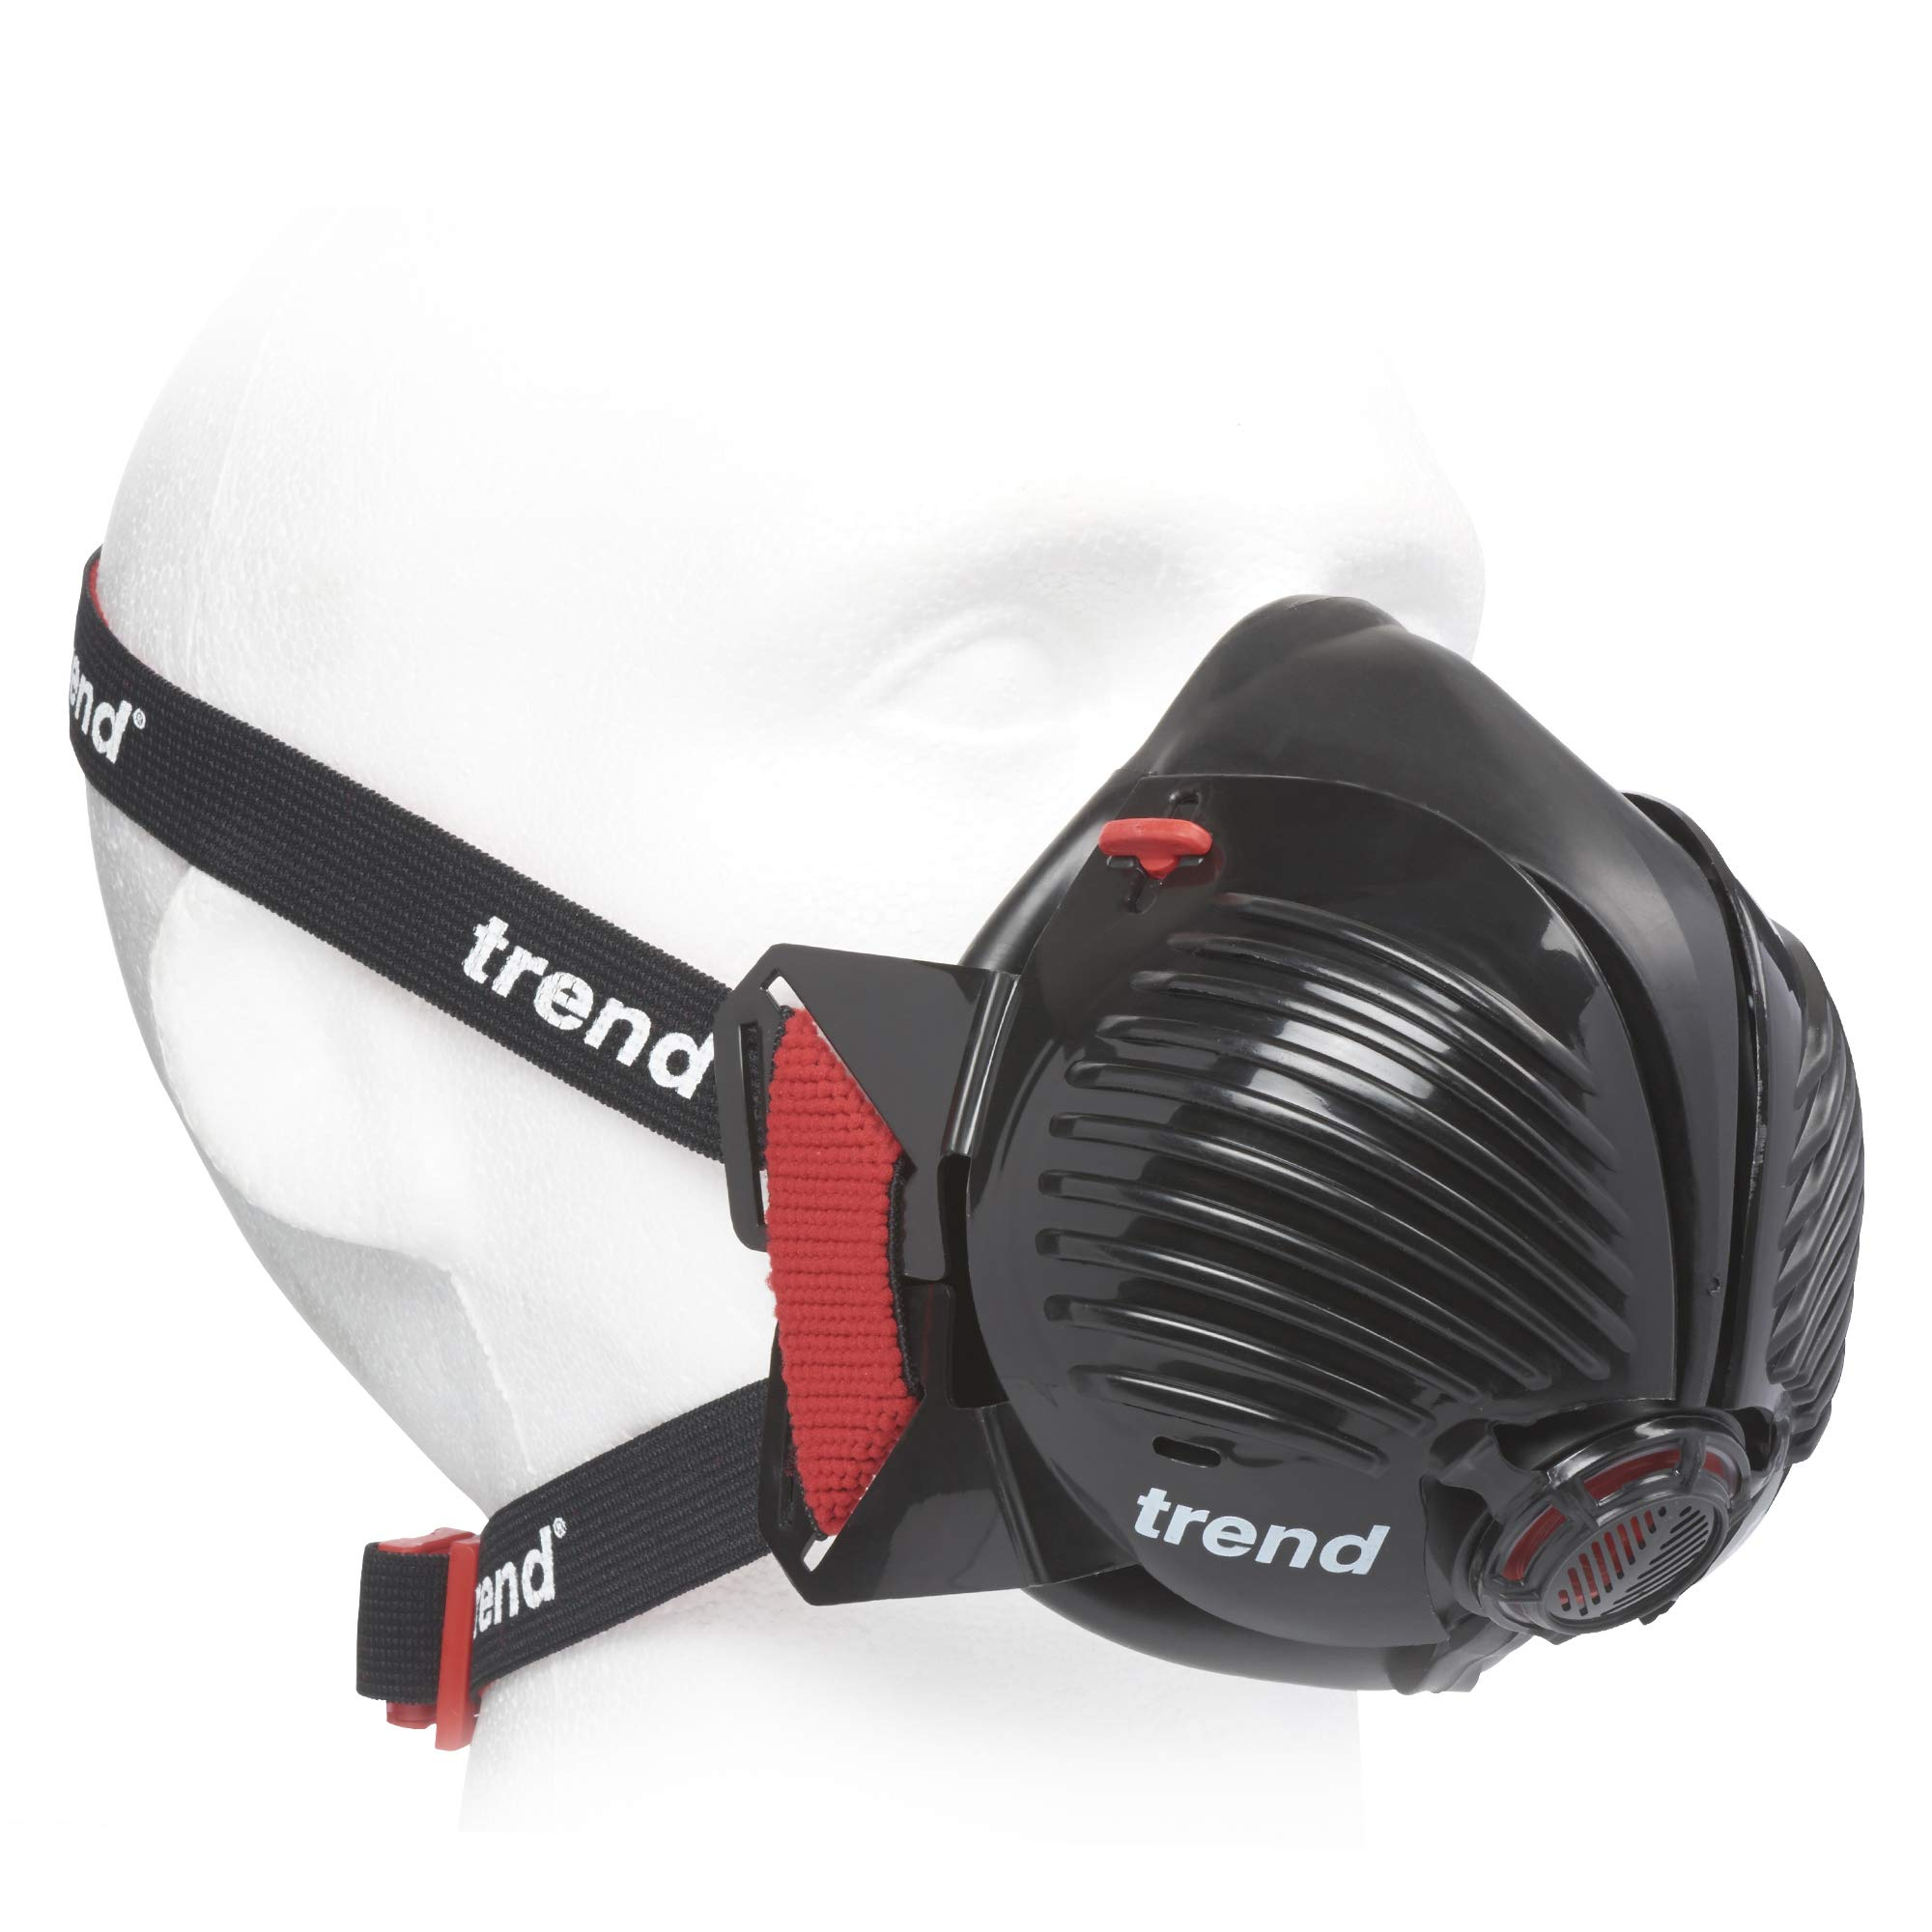 Trend STEALTH/SM Air Half Mask Small/Medium APF20 by Trend (Image #2)